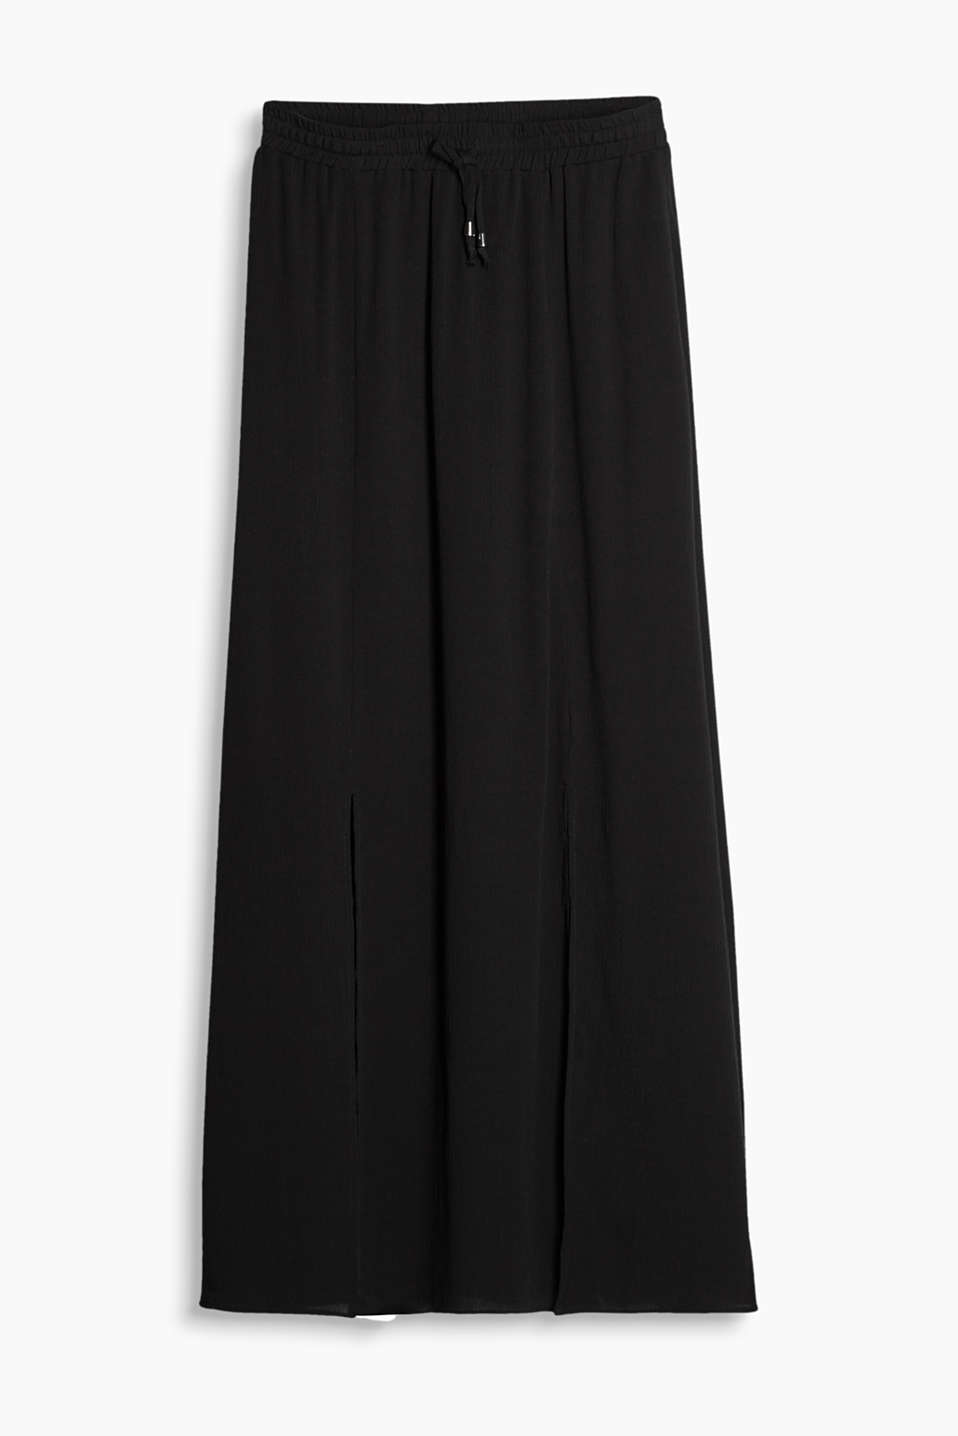 Slit maxi skirt with an elasticated waistband and a subtle crinkle texture